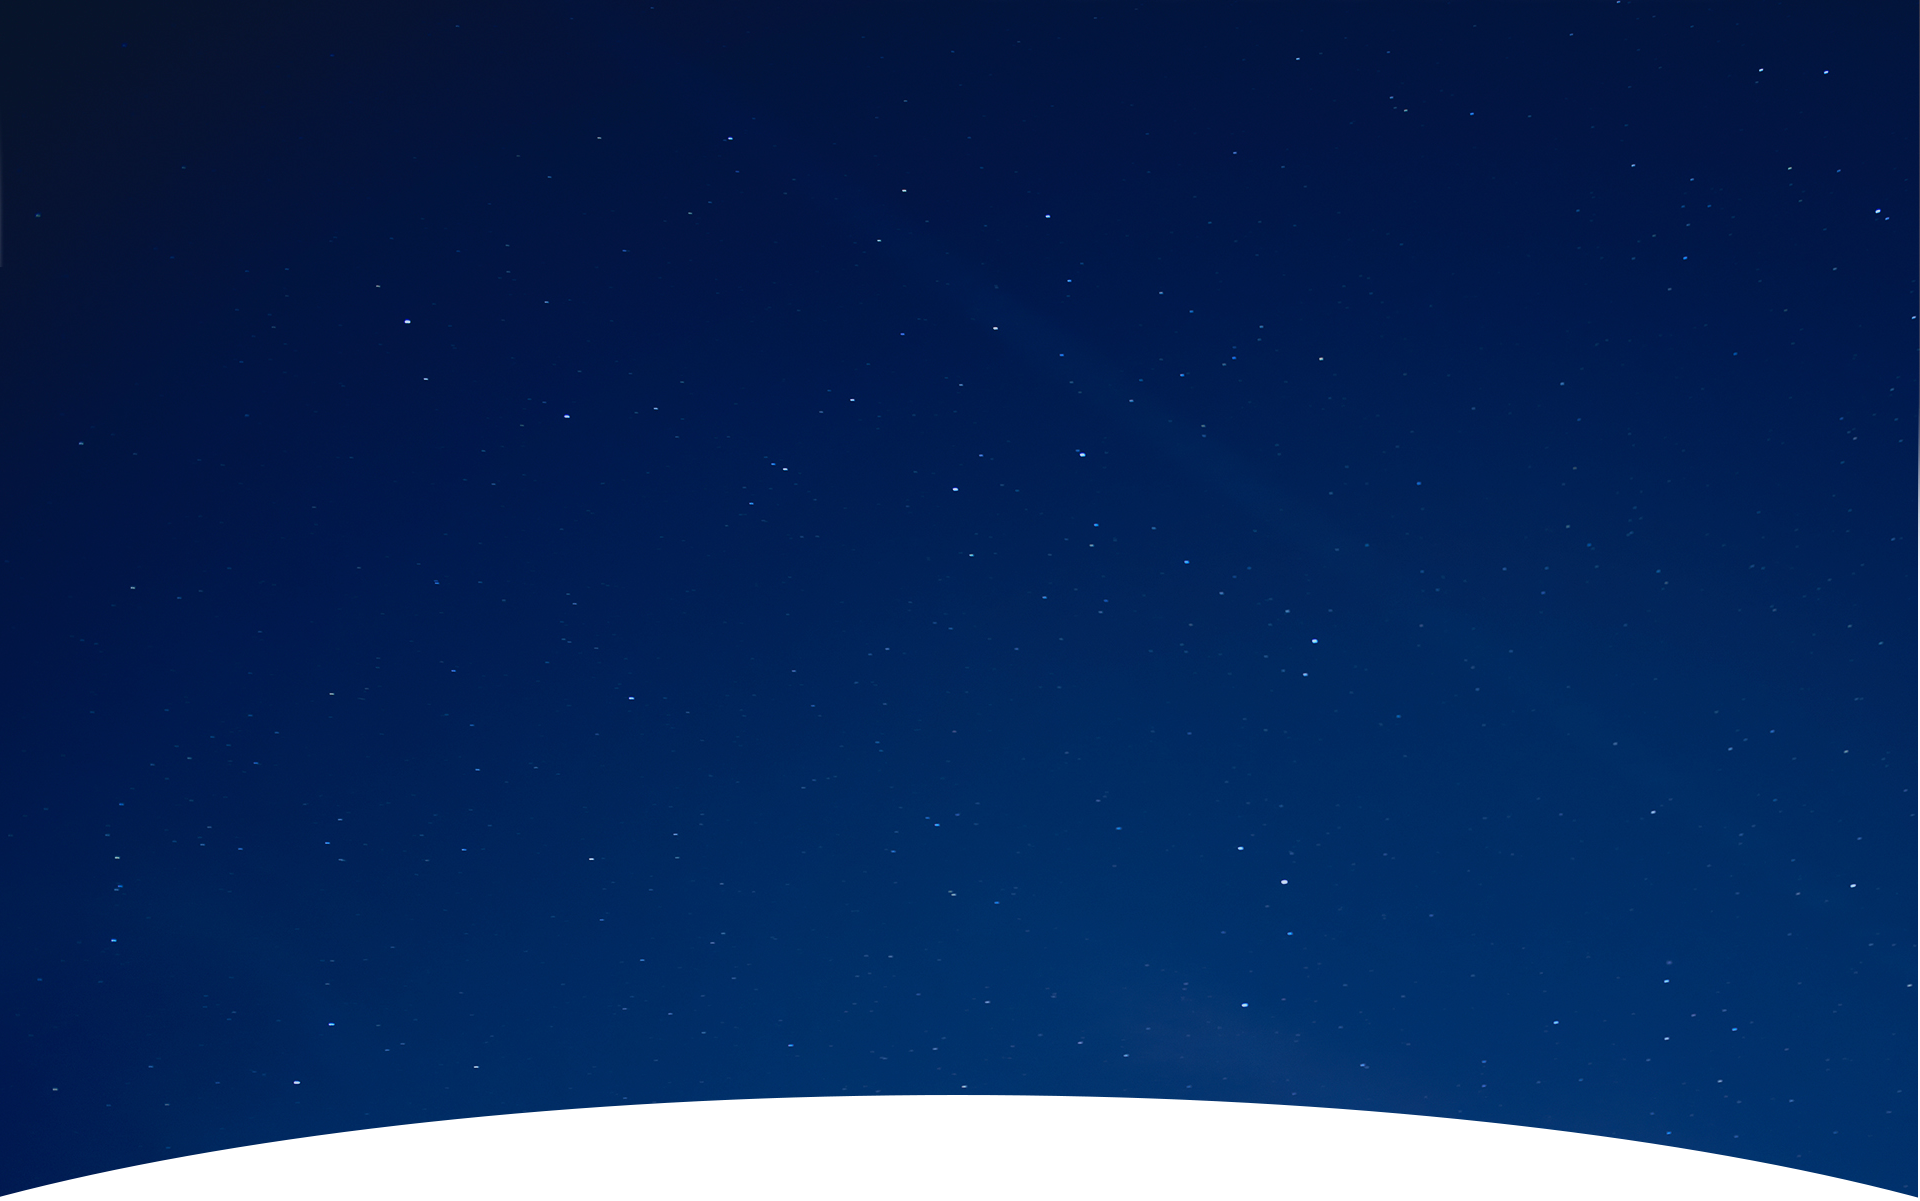 Protecht-bg-night-sky-dark-blue